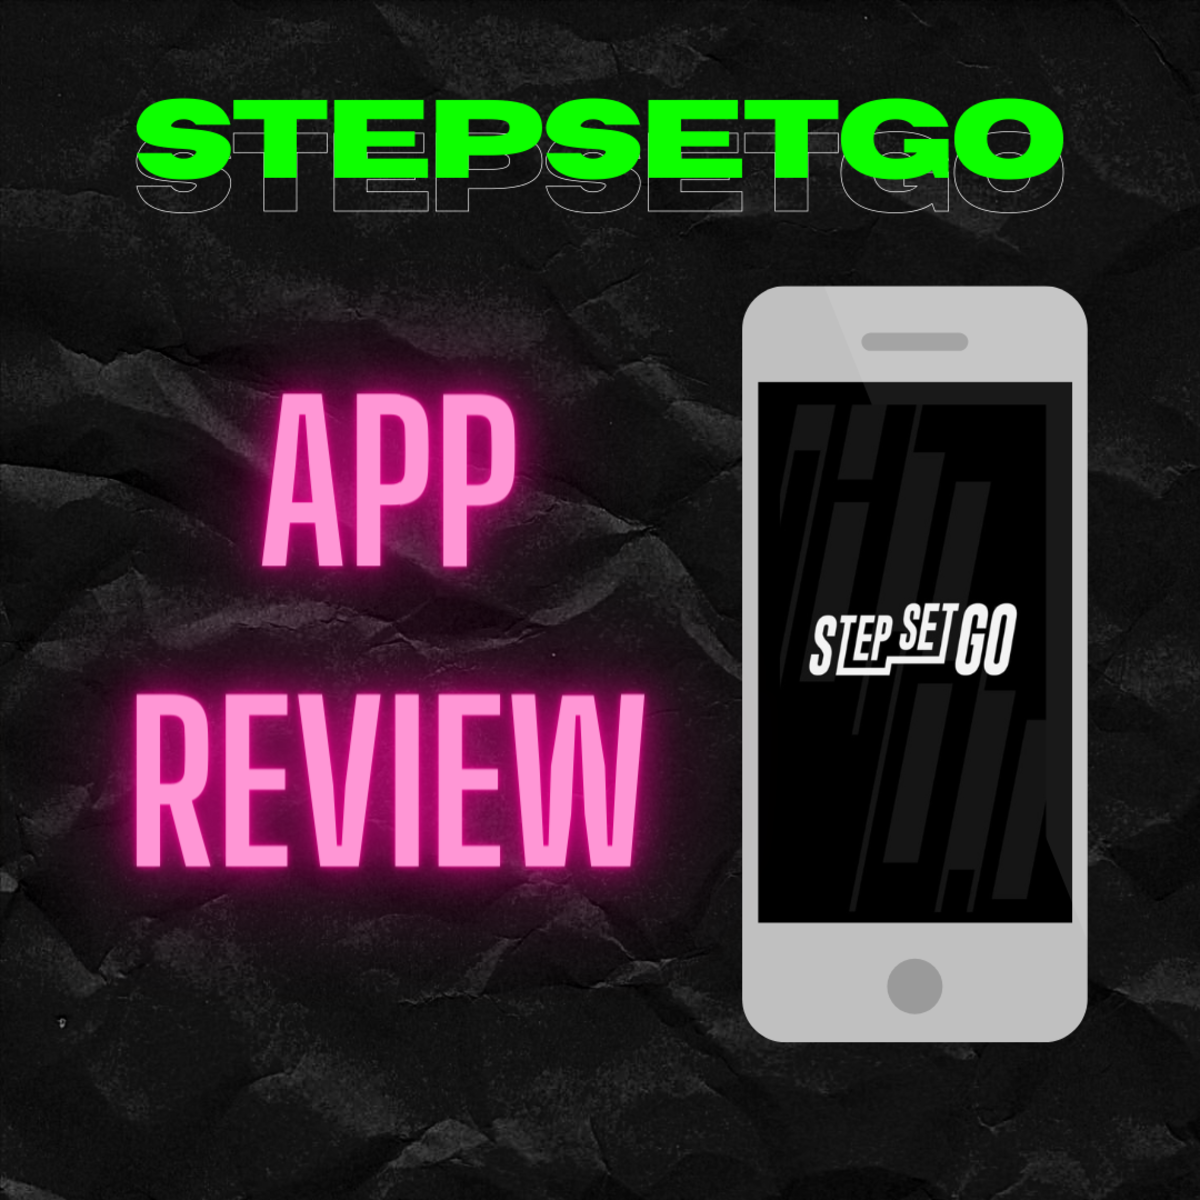 Review on the Step Set Go Mobile App